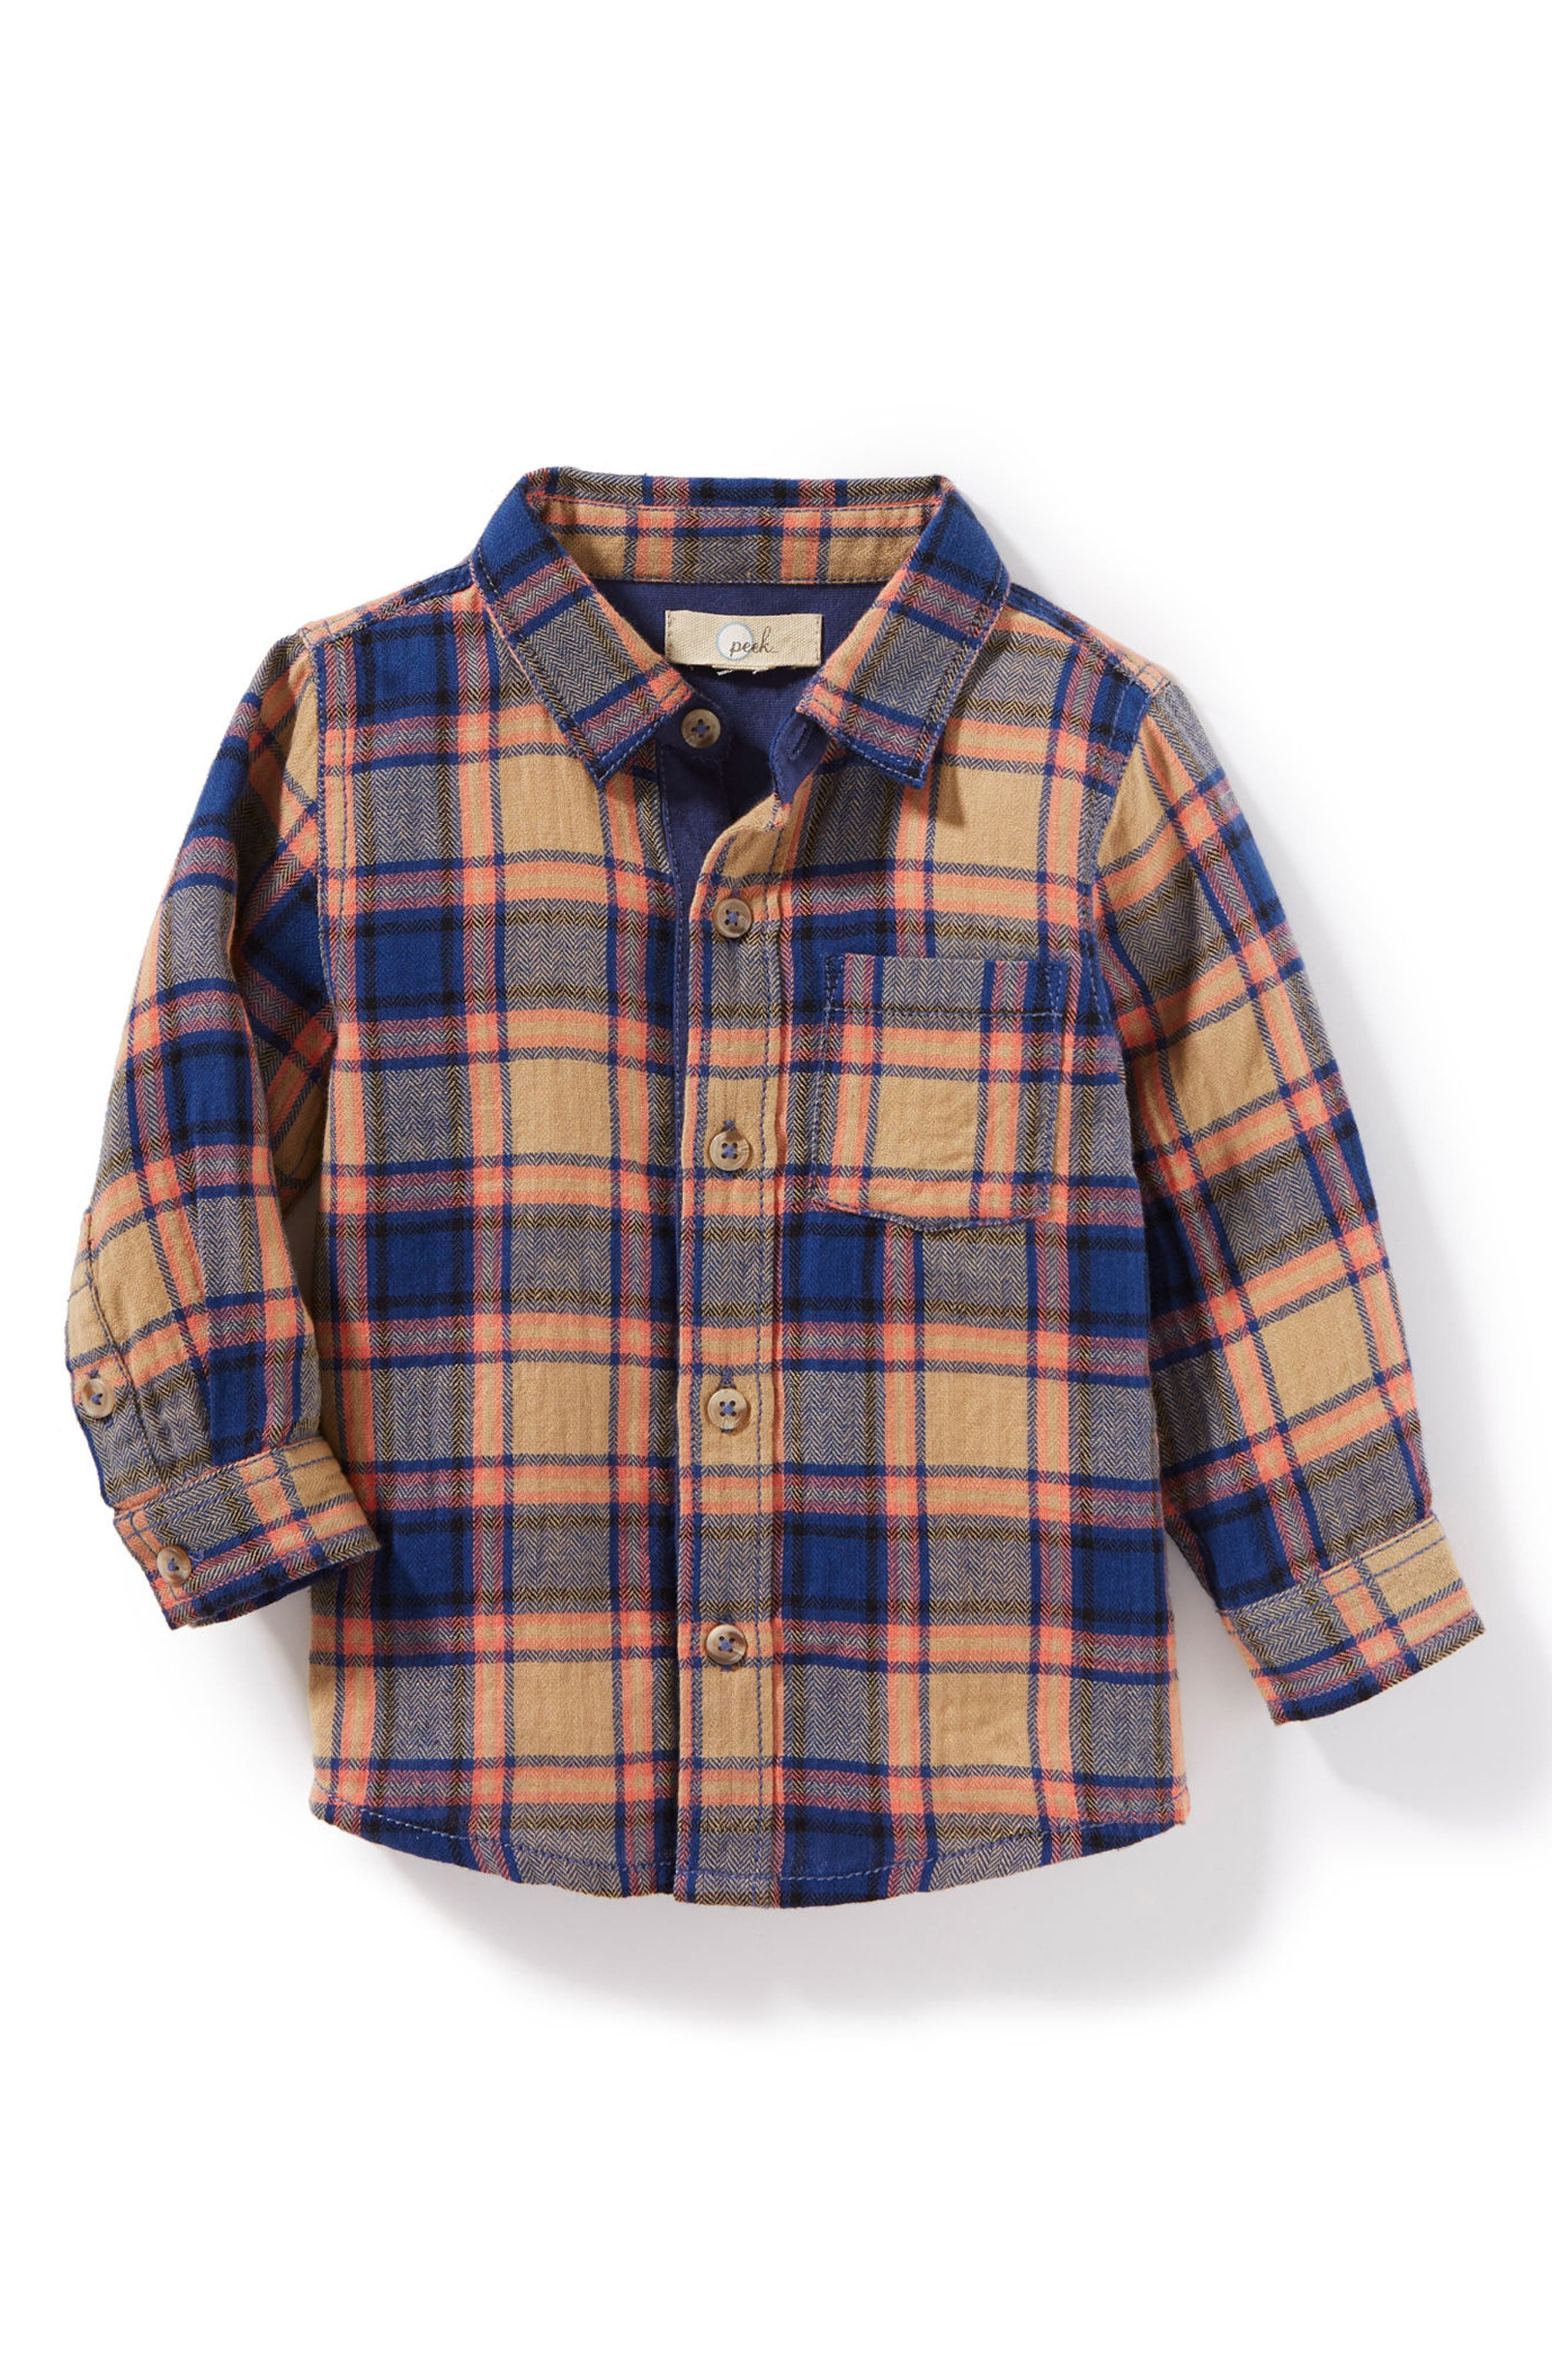 Alternate Image 1 Selected - Peek Henry Plaid Woven Shirt (Baby Boys)